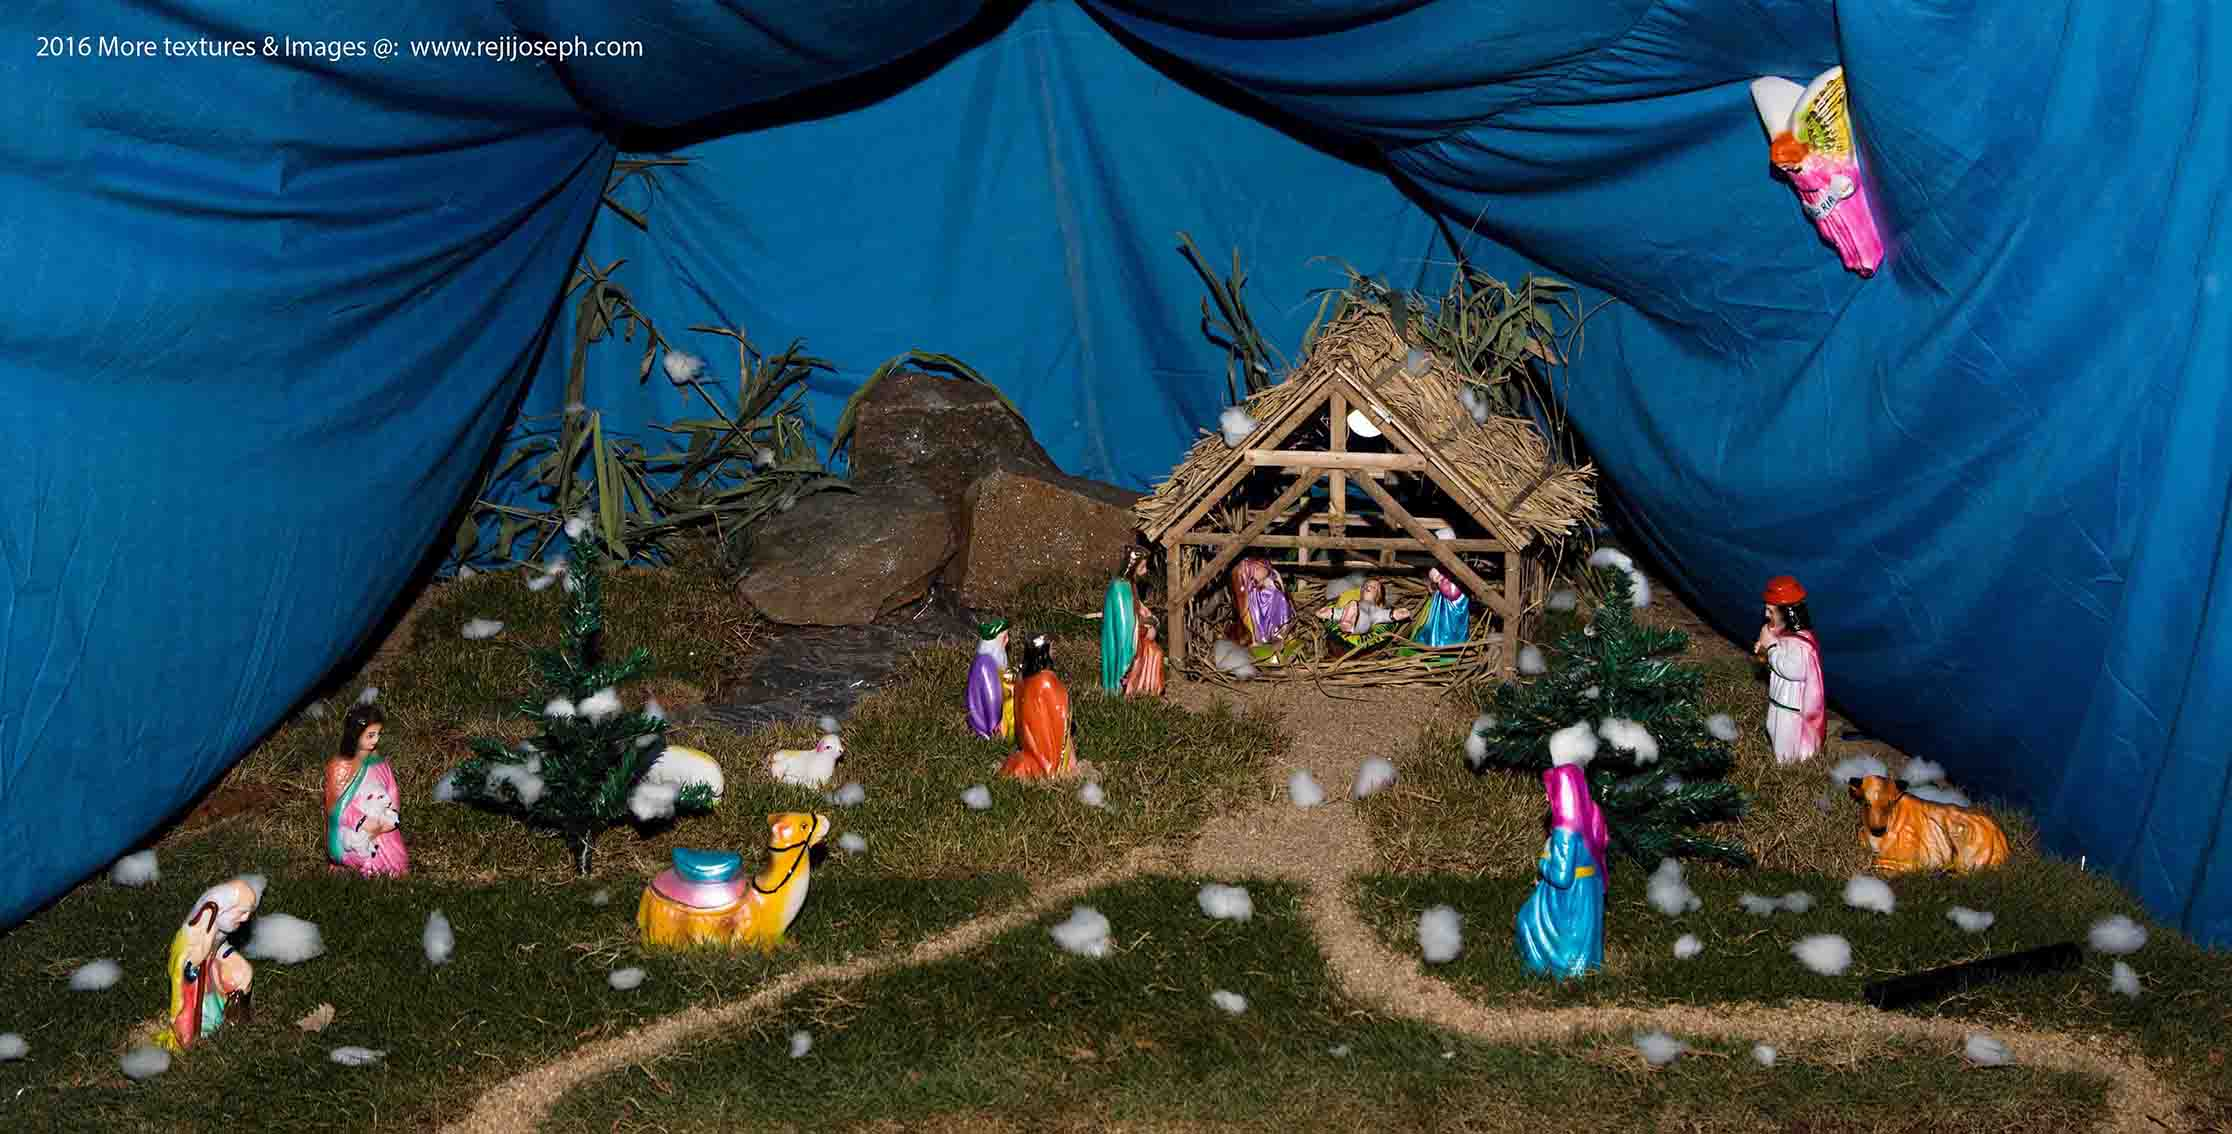 Christmas crib Pulkoodu little flower church elamkulam 00009